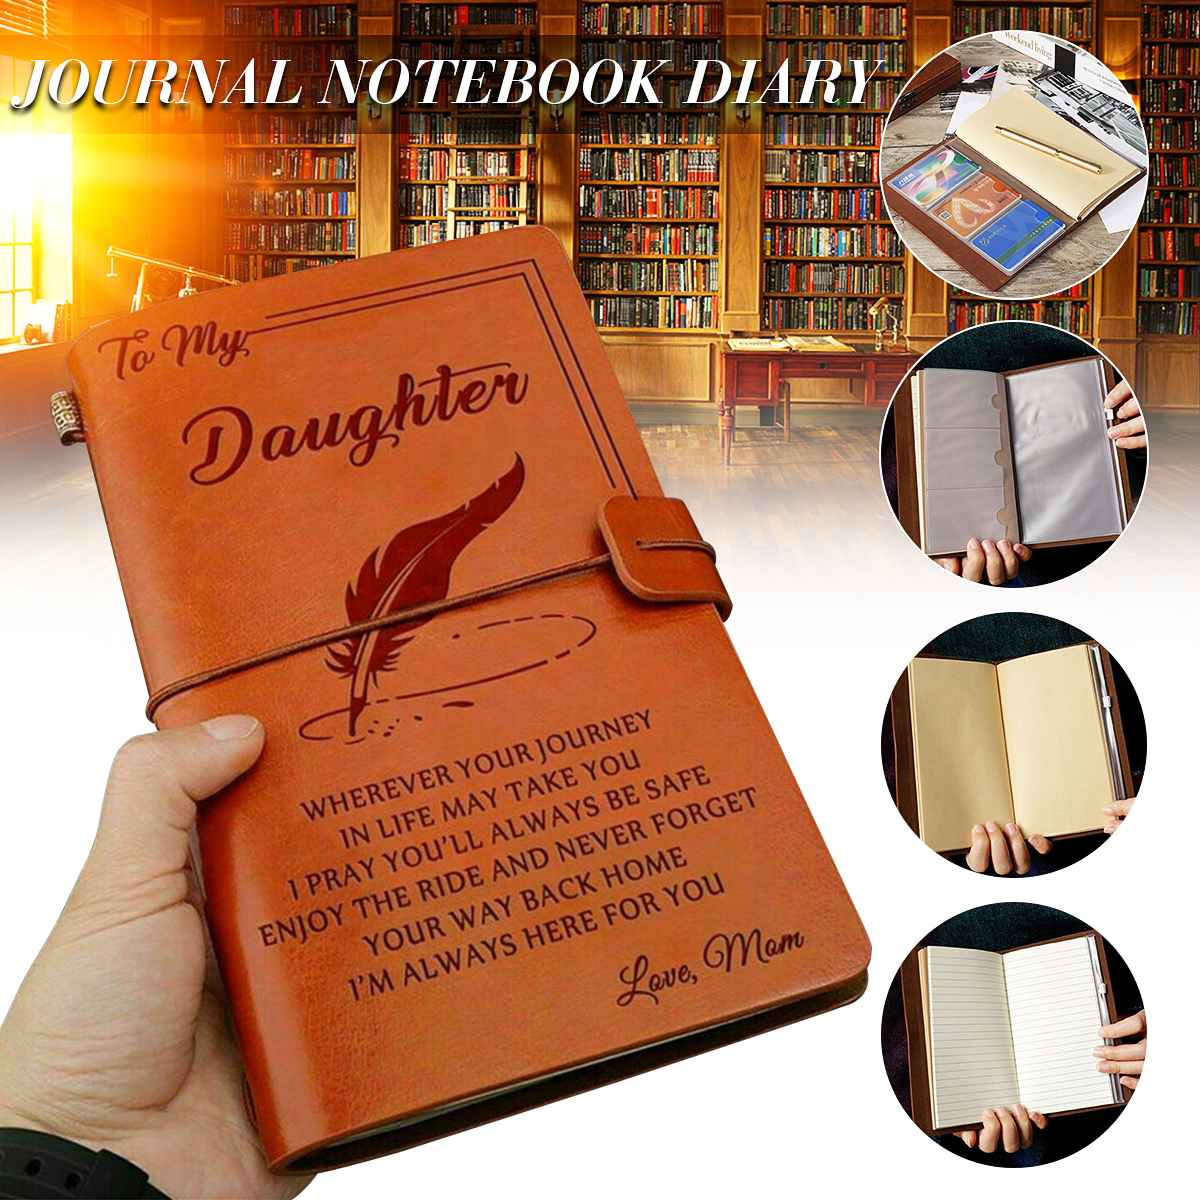 Engraved Leather Journal Notebook Diary To My Daughter Face Challenges Love Mon Engraved Notebook Diary 20x12cm